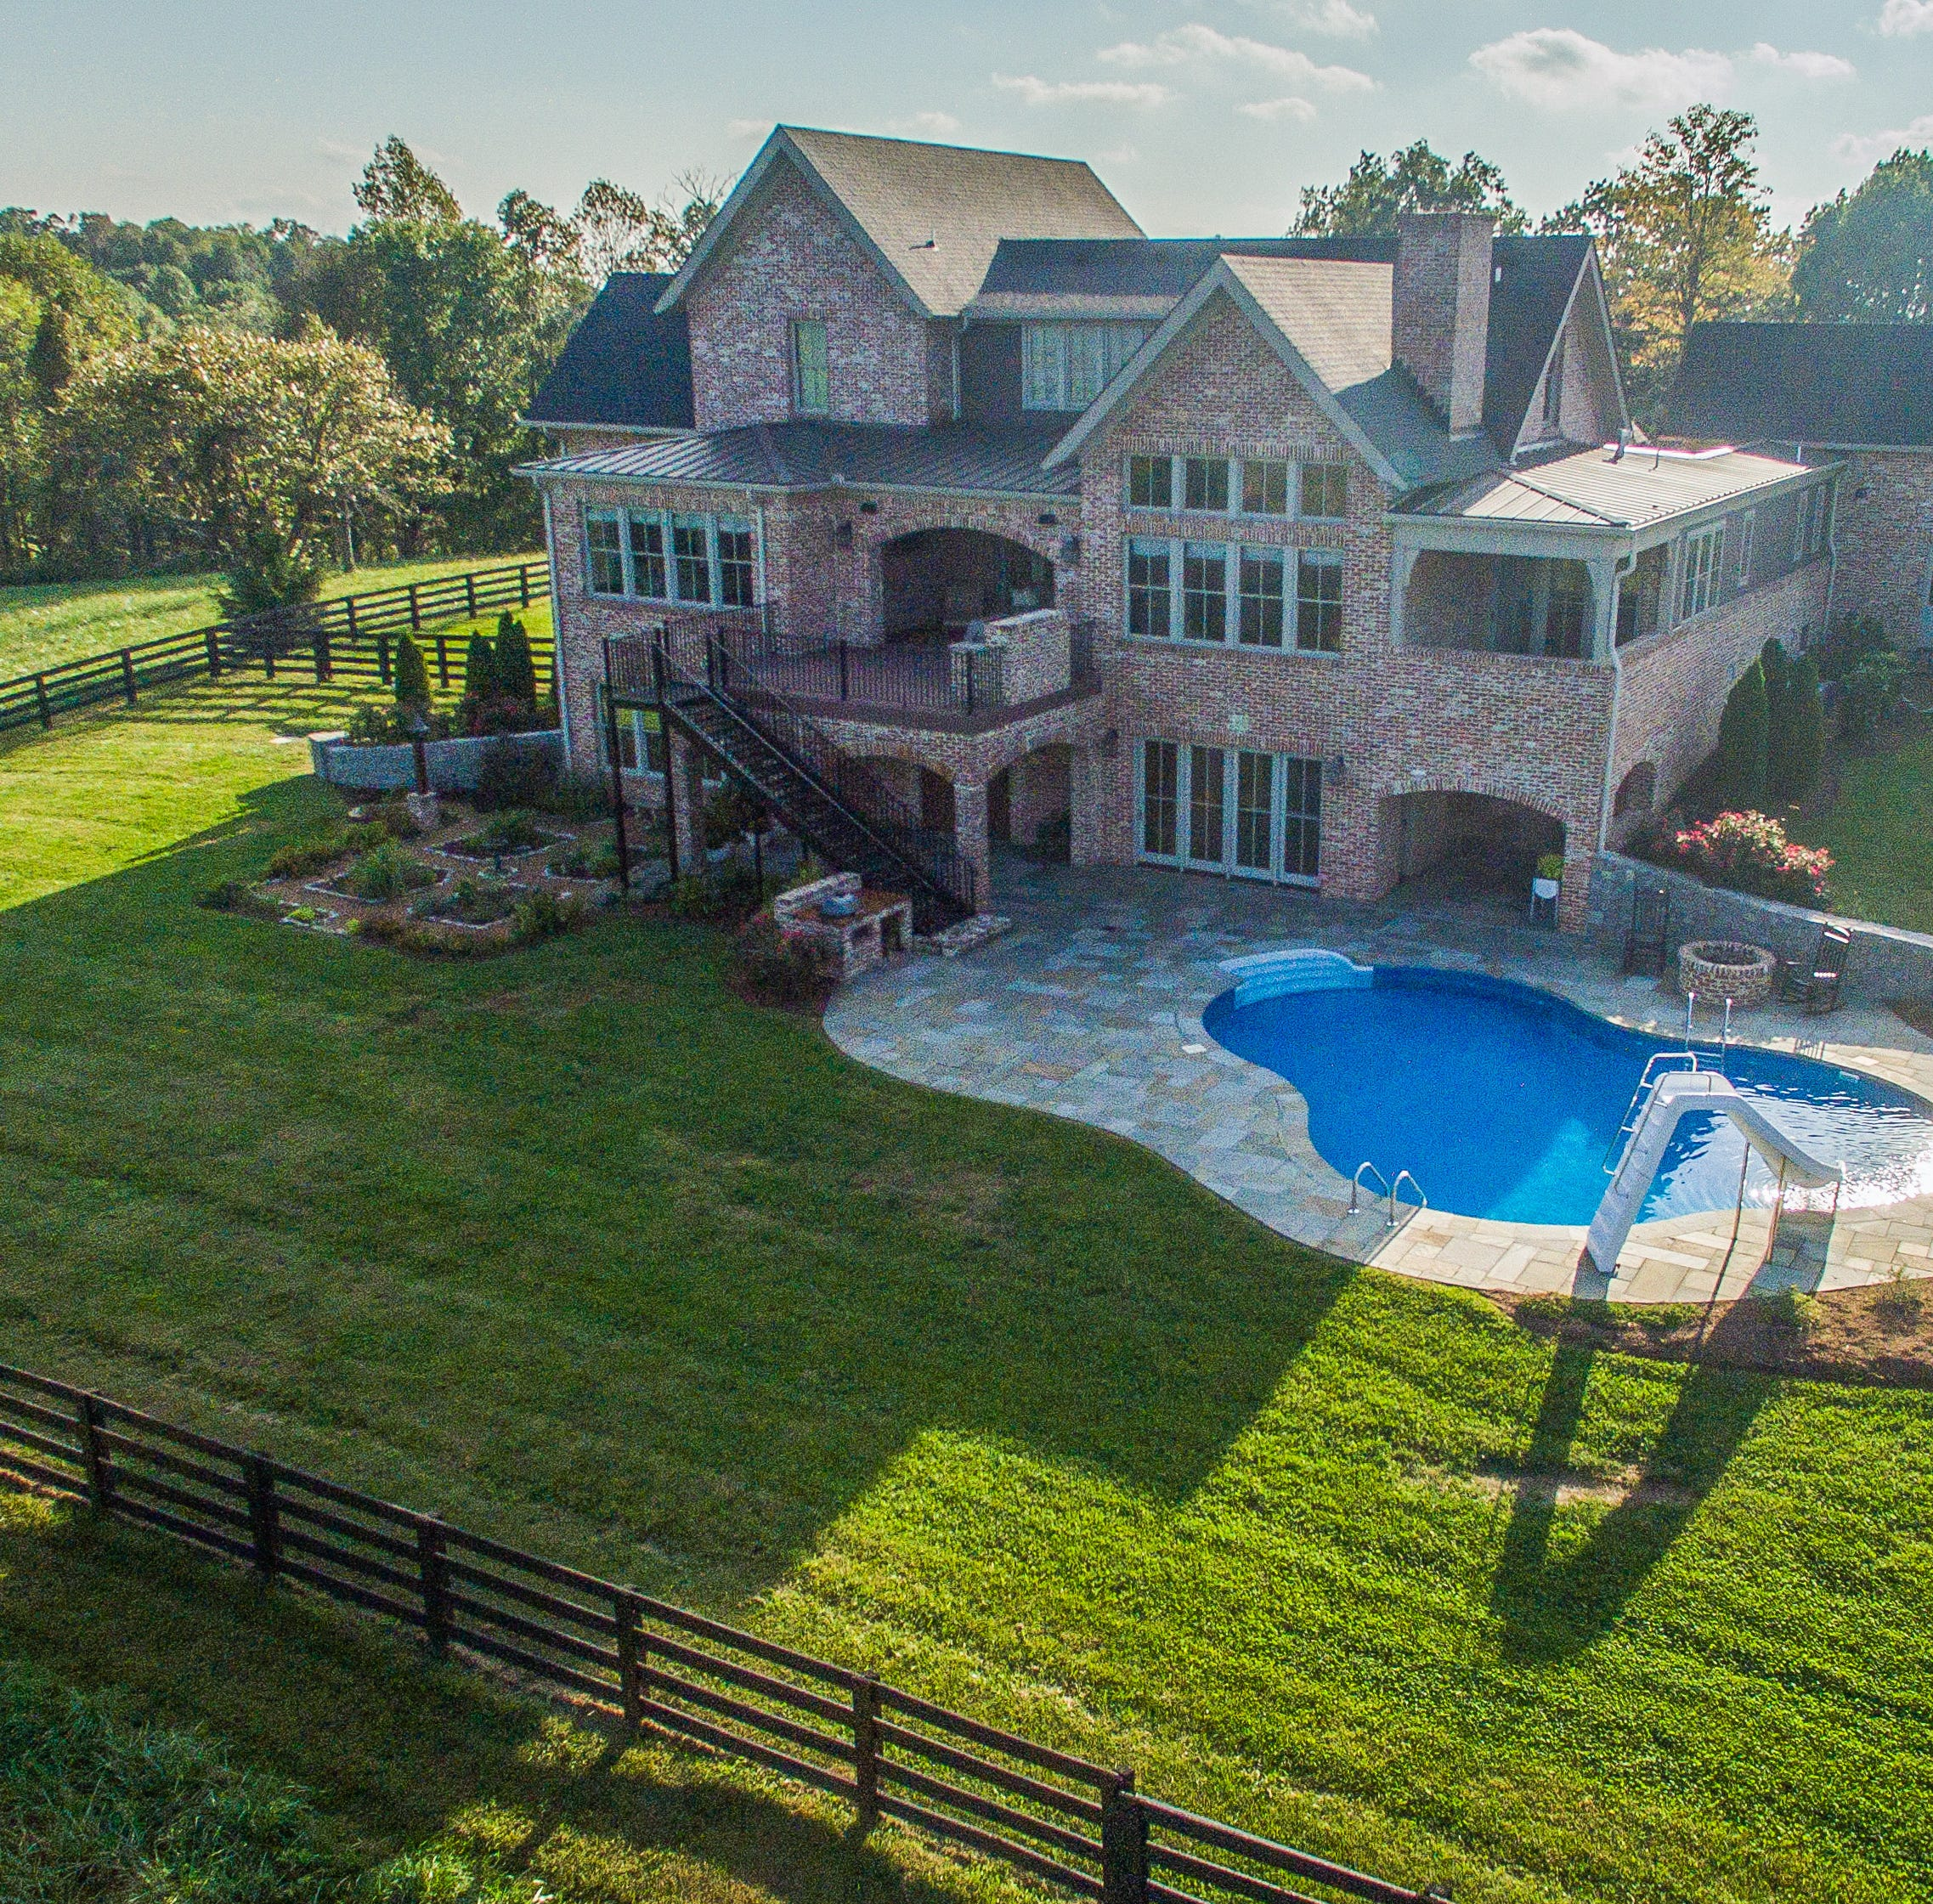 College Grove home on market for $1.5 million offers 18 acres with spectacular views